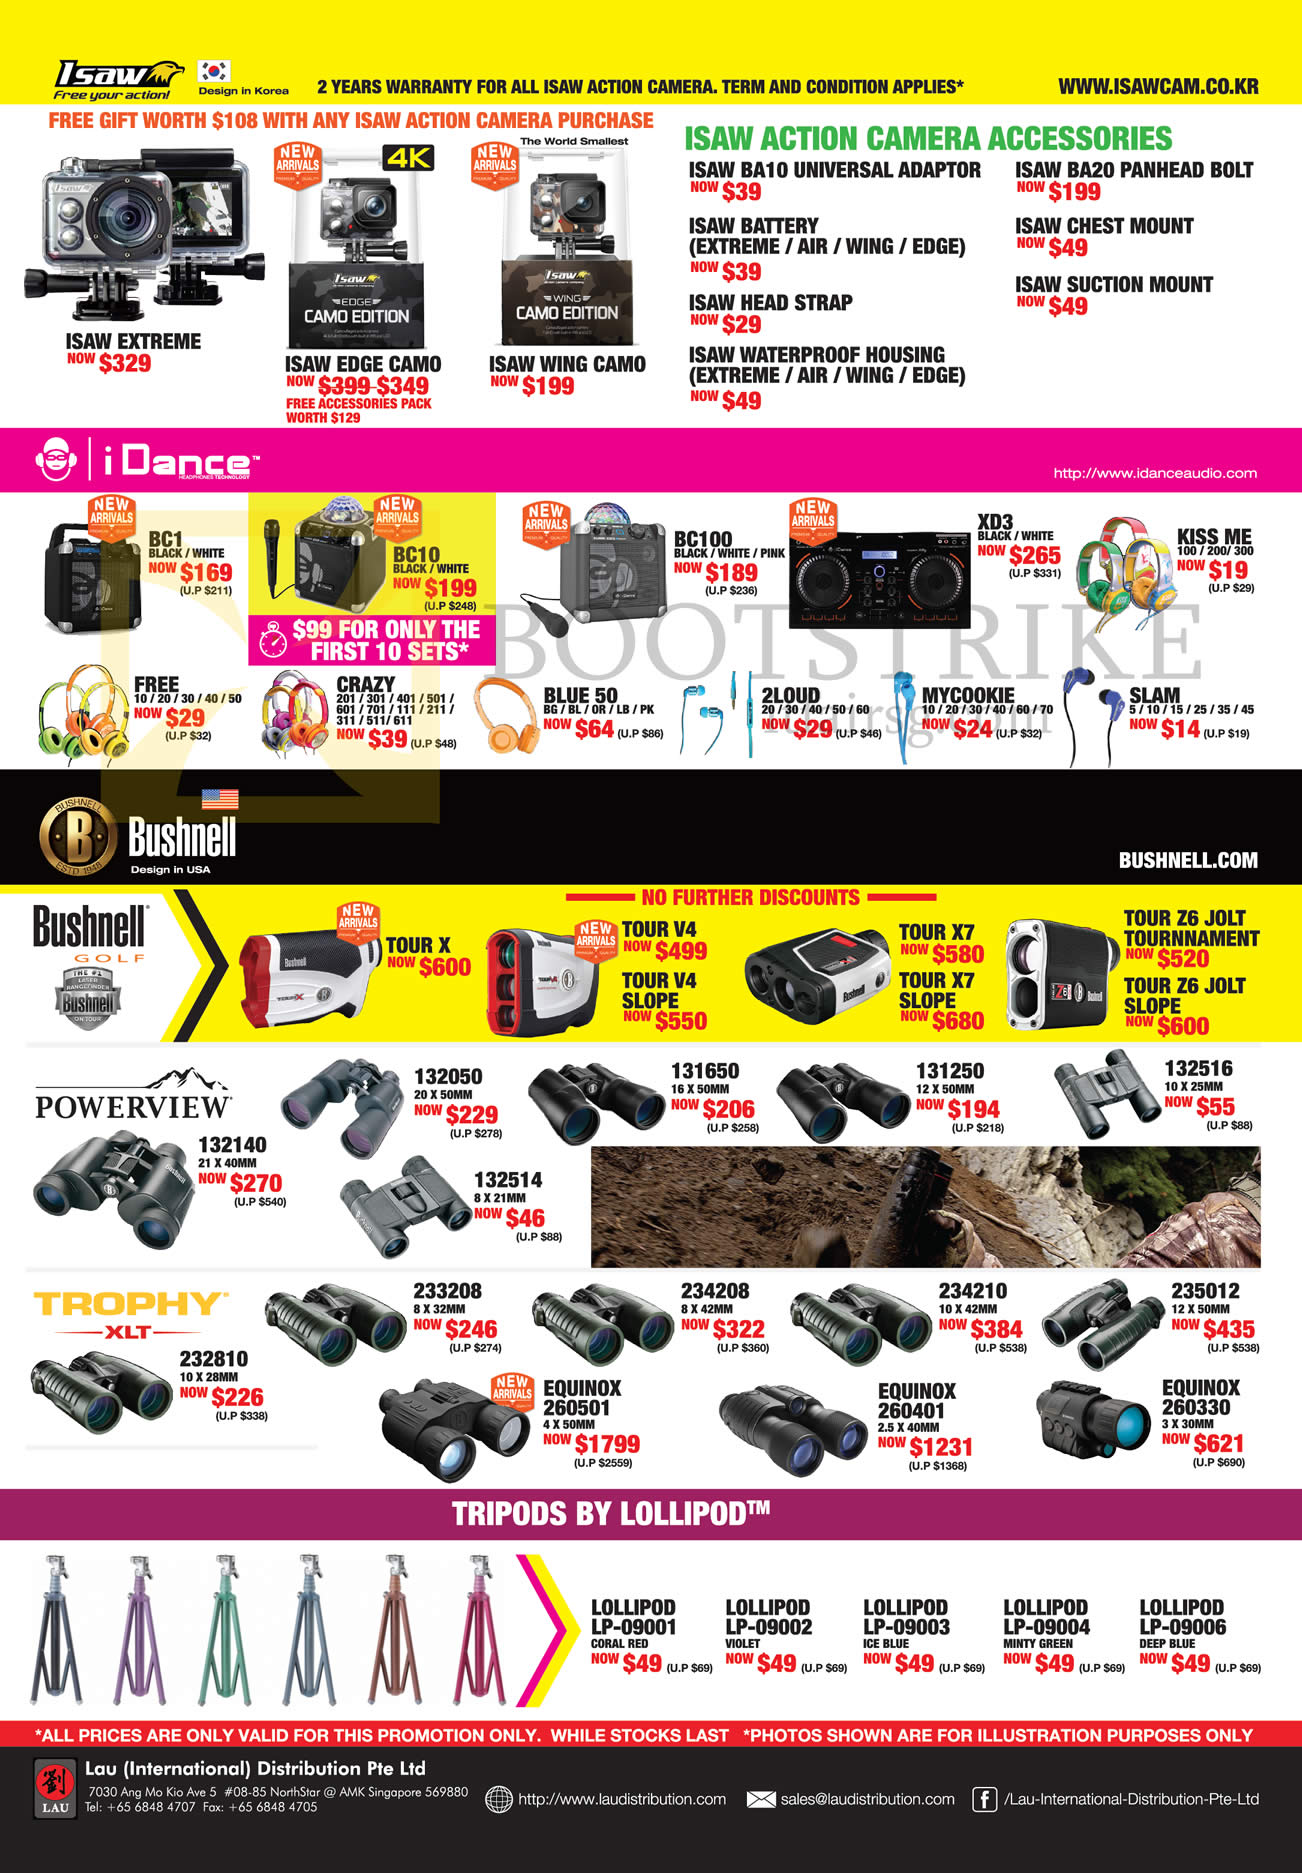 COMEX 2016 price list image brochure of Lau Intl Isaw Action Camera Accessories, IDance, Bushnell Binoculars, Lollipod Tripods, Trophy XLT, Powerview